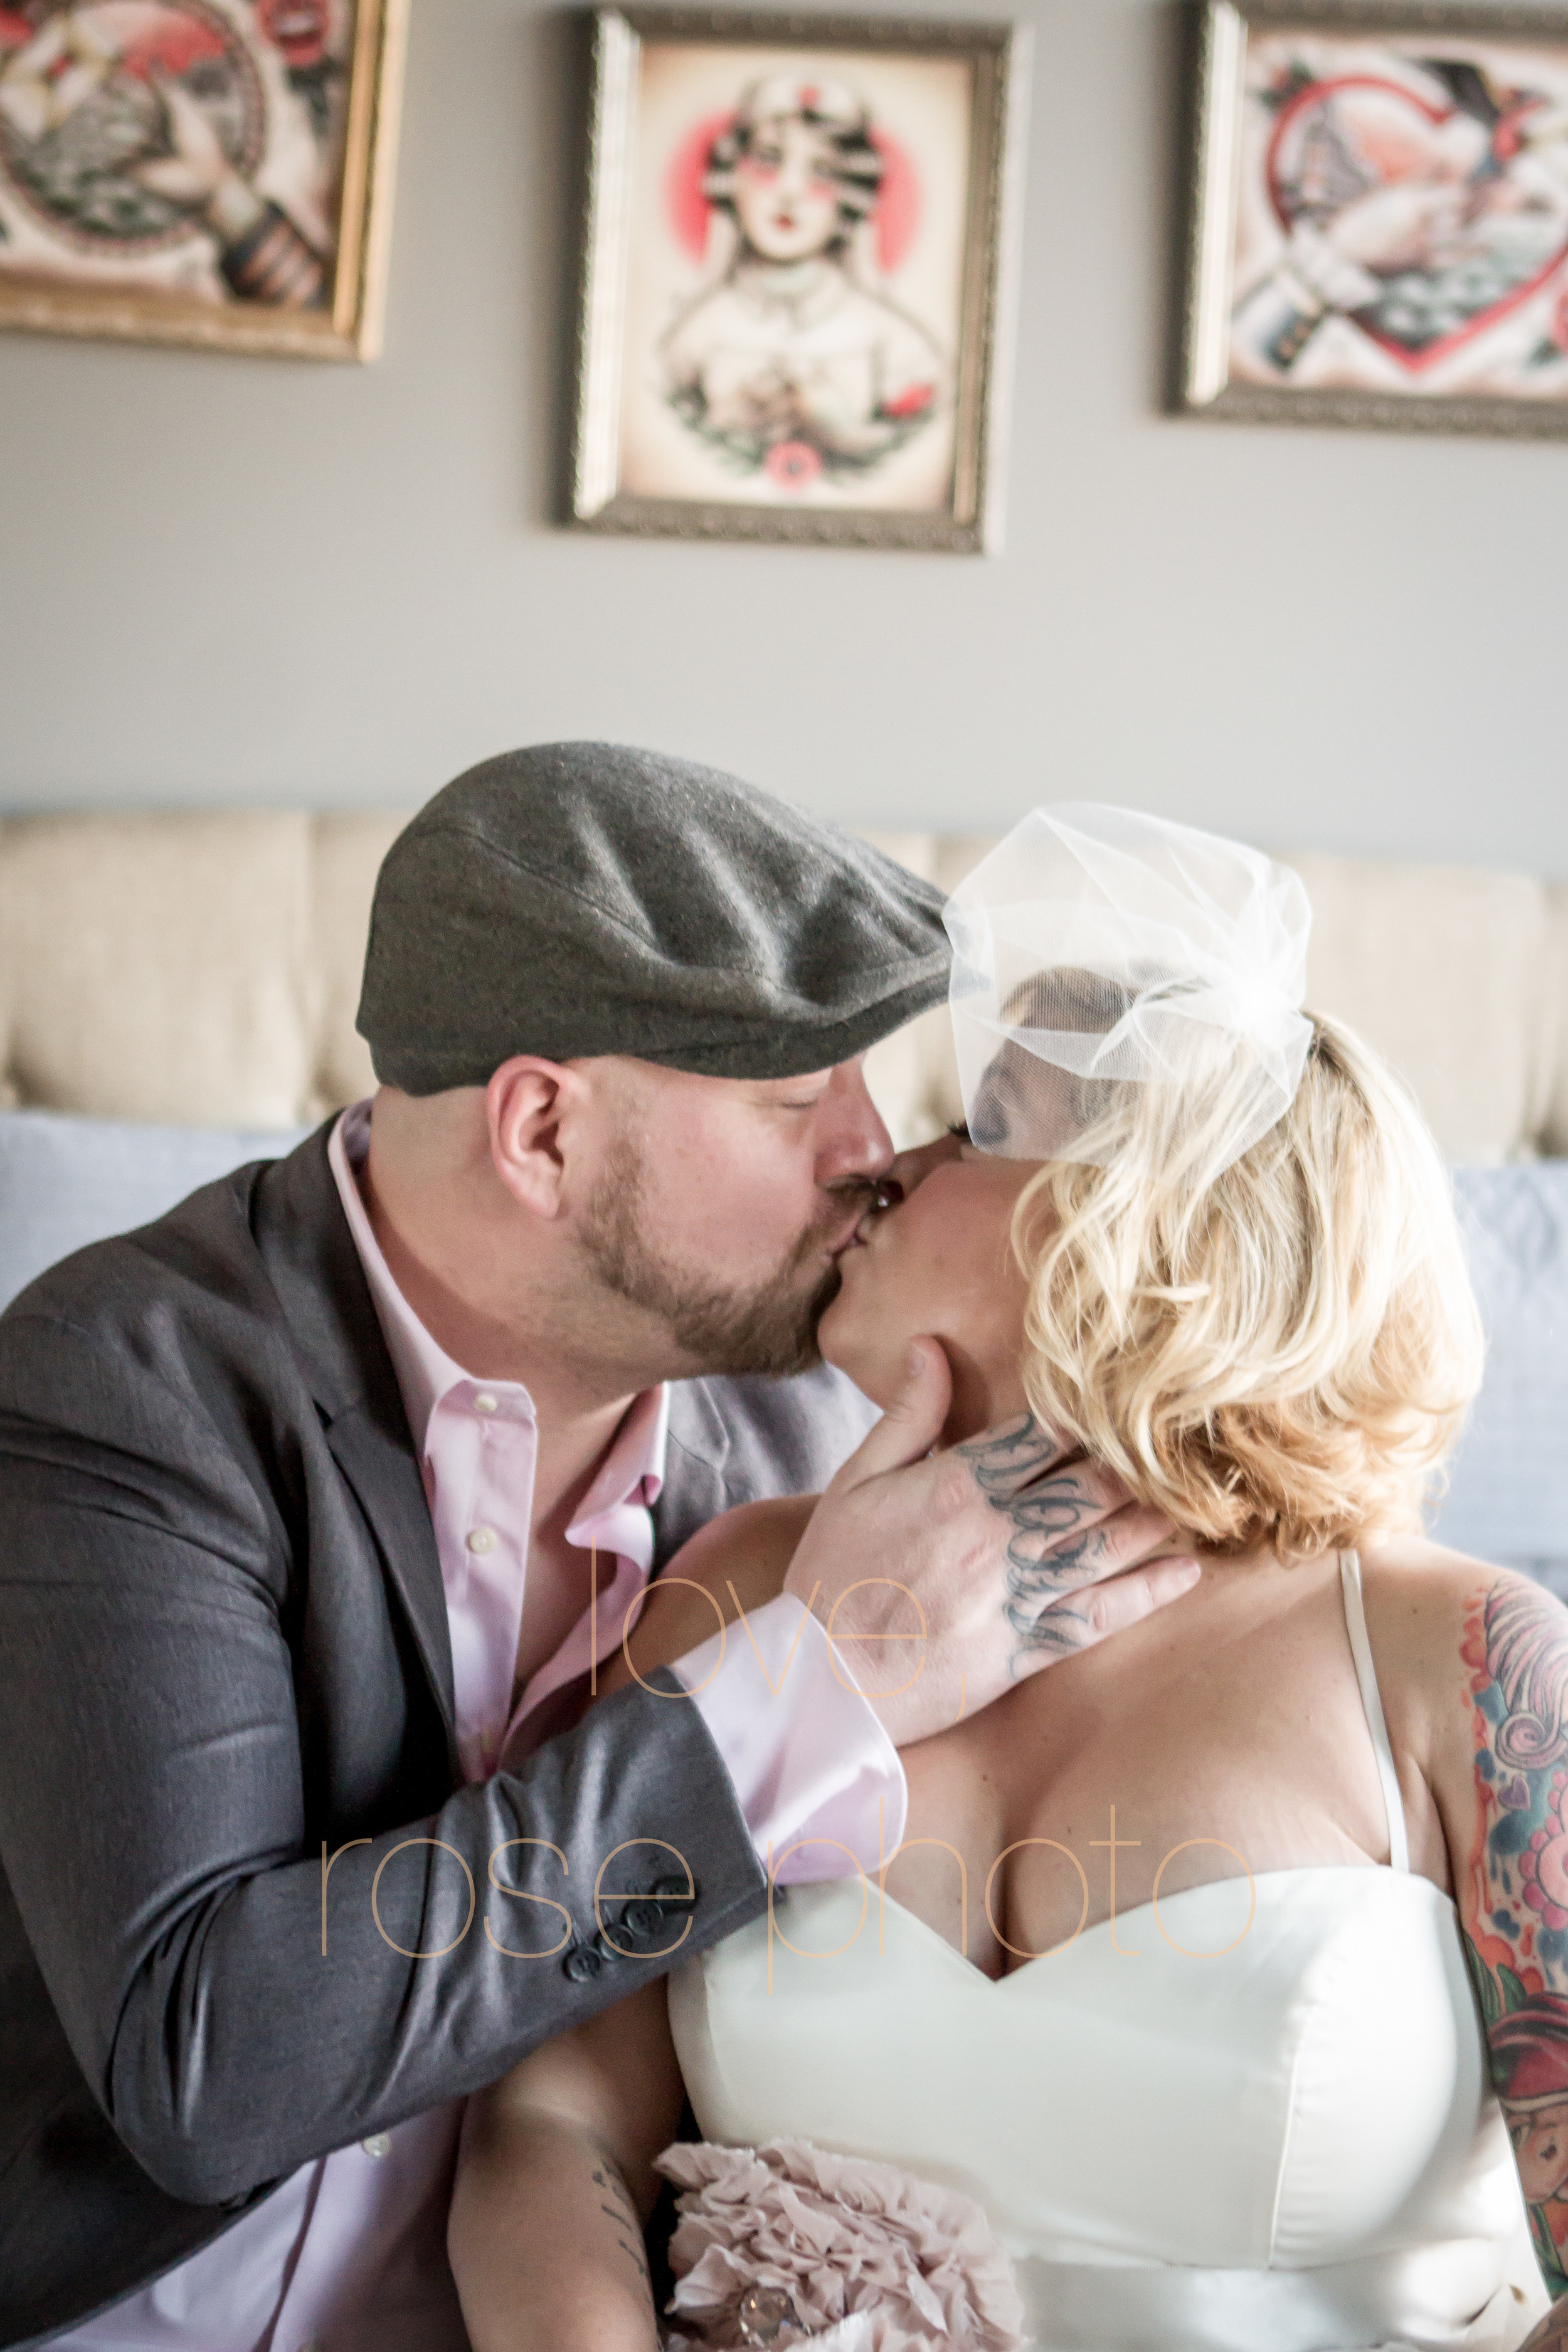 nikki + mike west loop vintage classic throwback pinup rock and roll tattoo photoshoot engagement wedding photo shoot-006.jpg